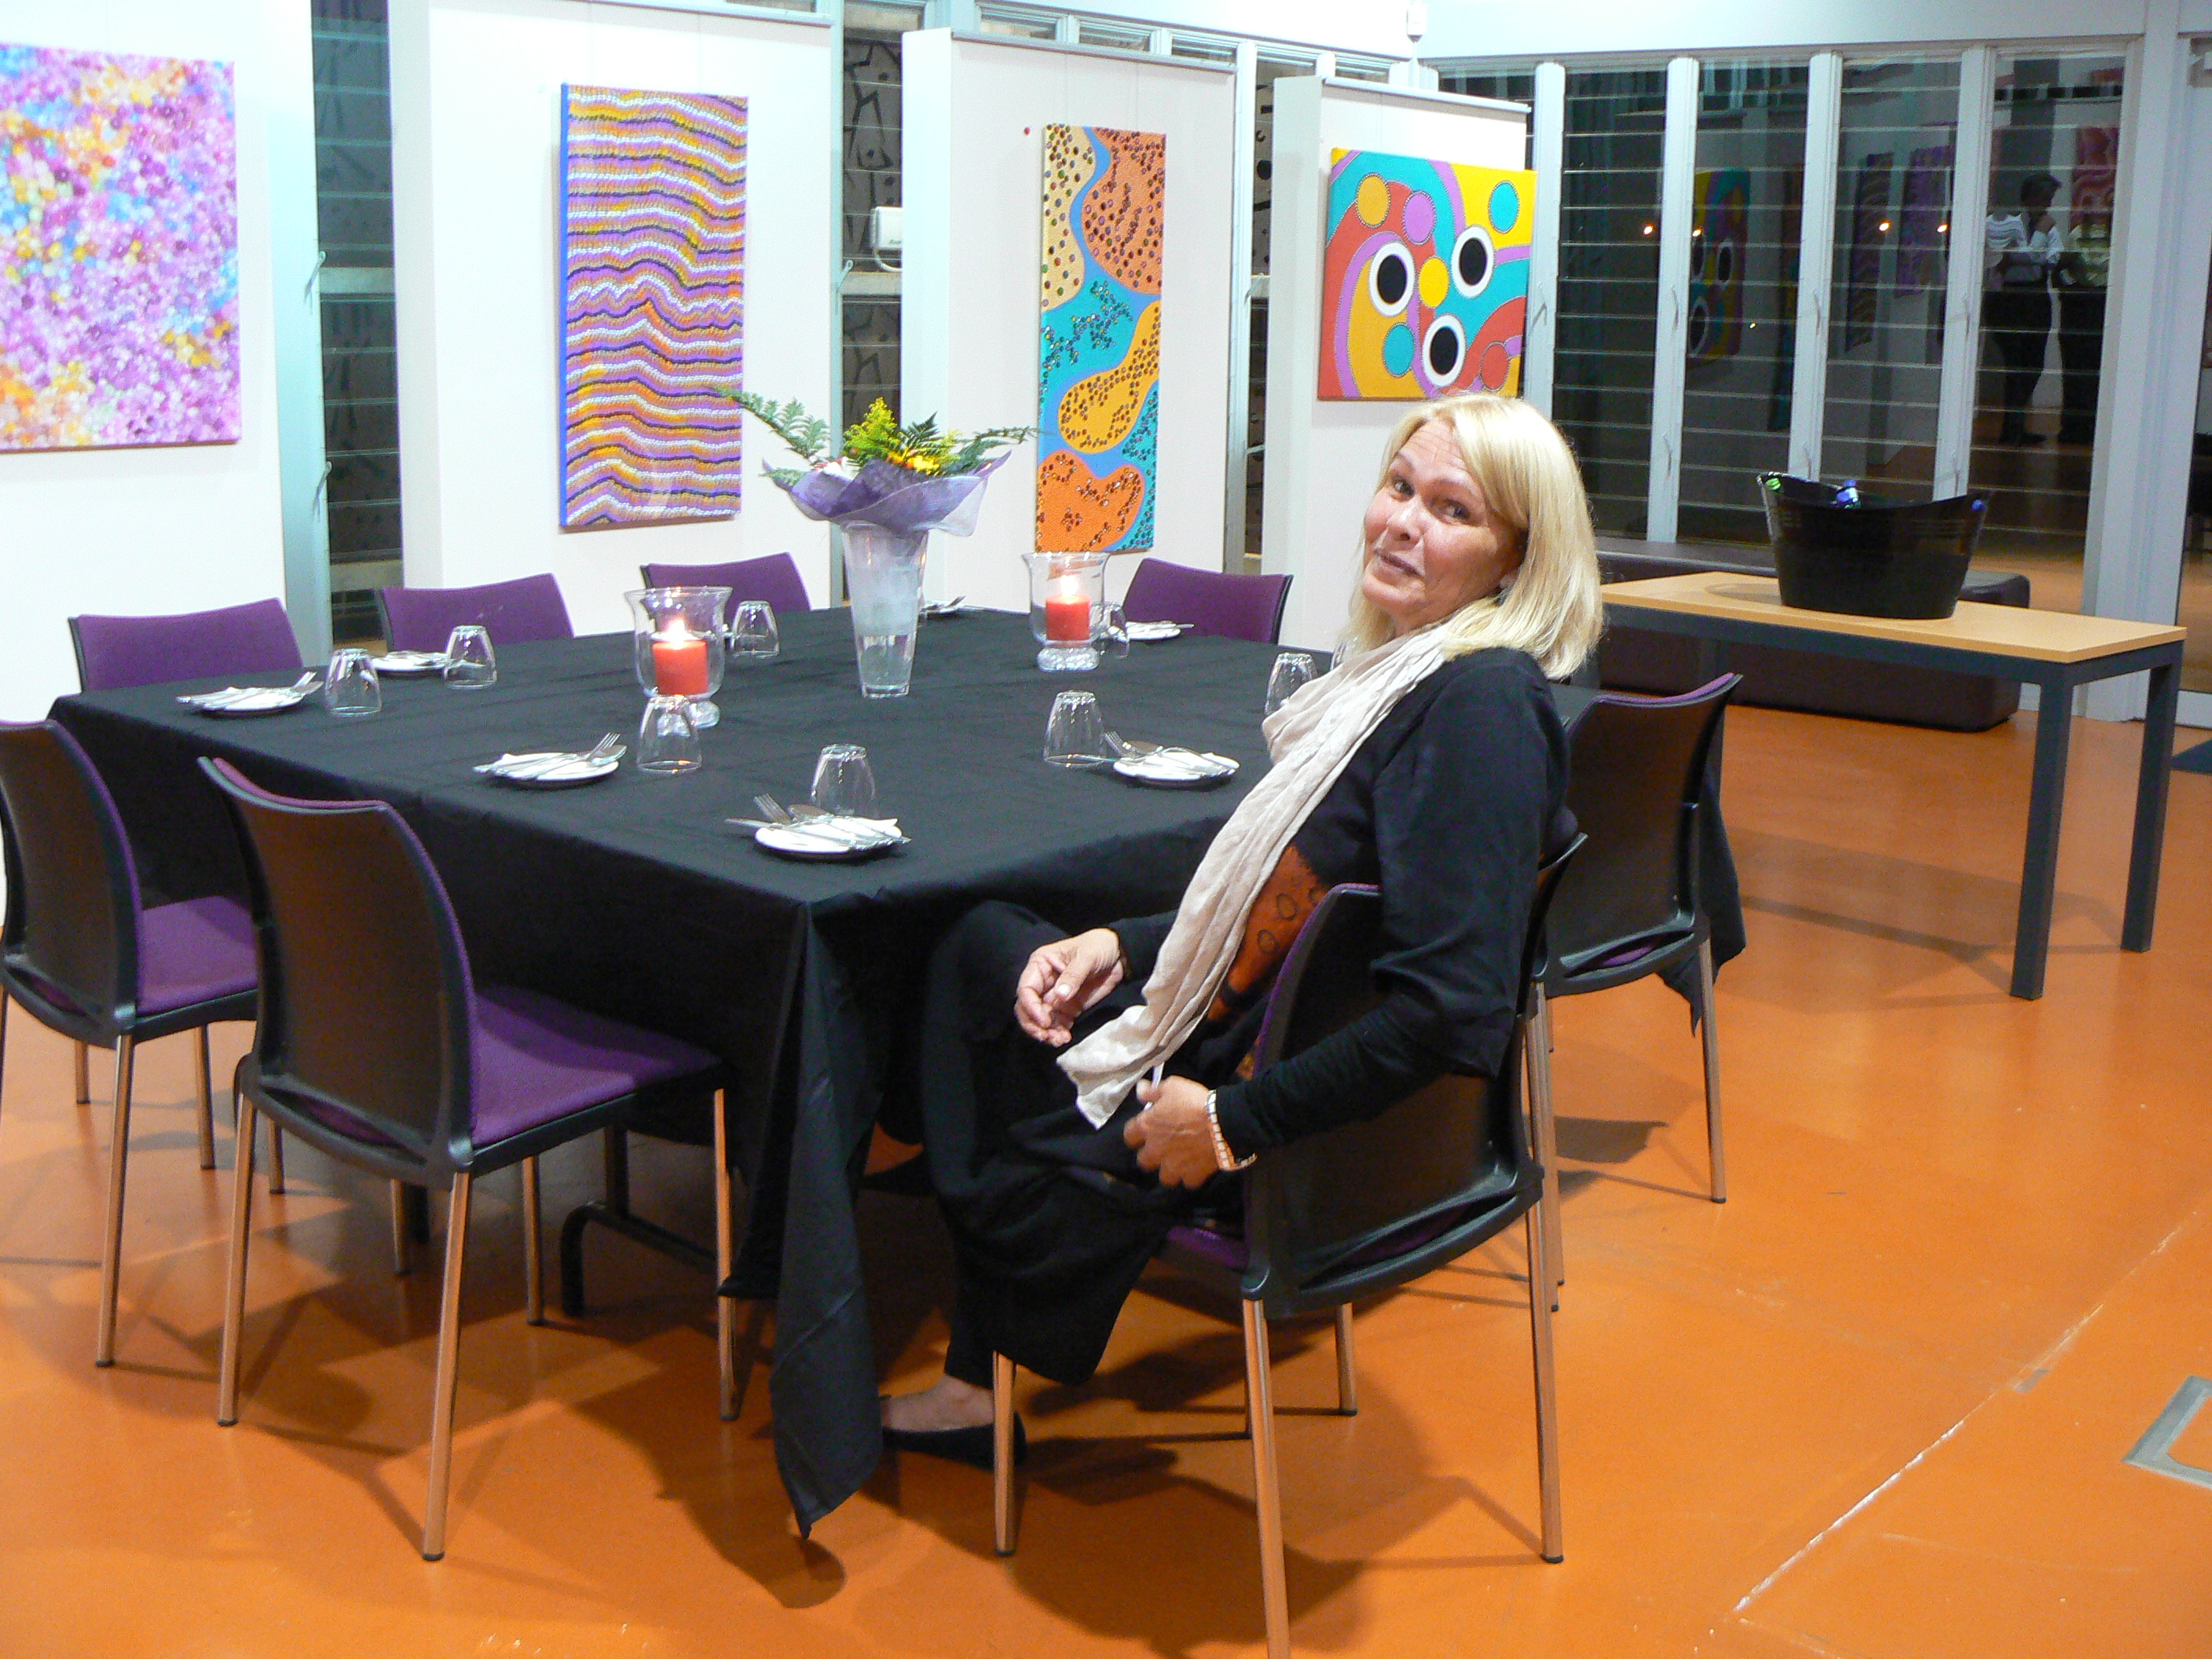 Bonni Ingram the Artist who generously hosted the launch of the Science Scholarships at her inaugural exhibtion.